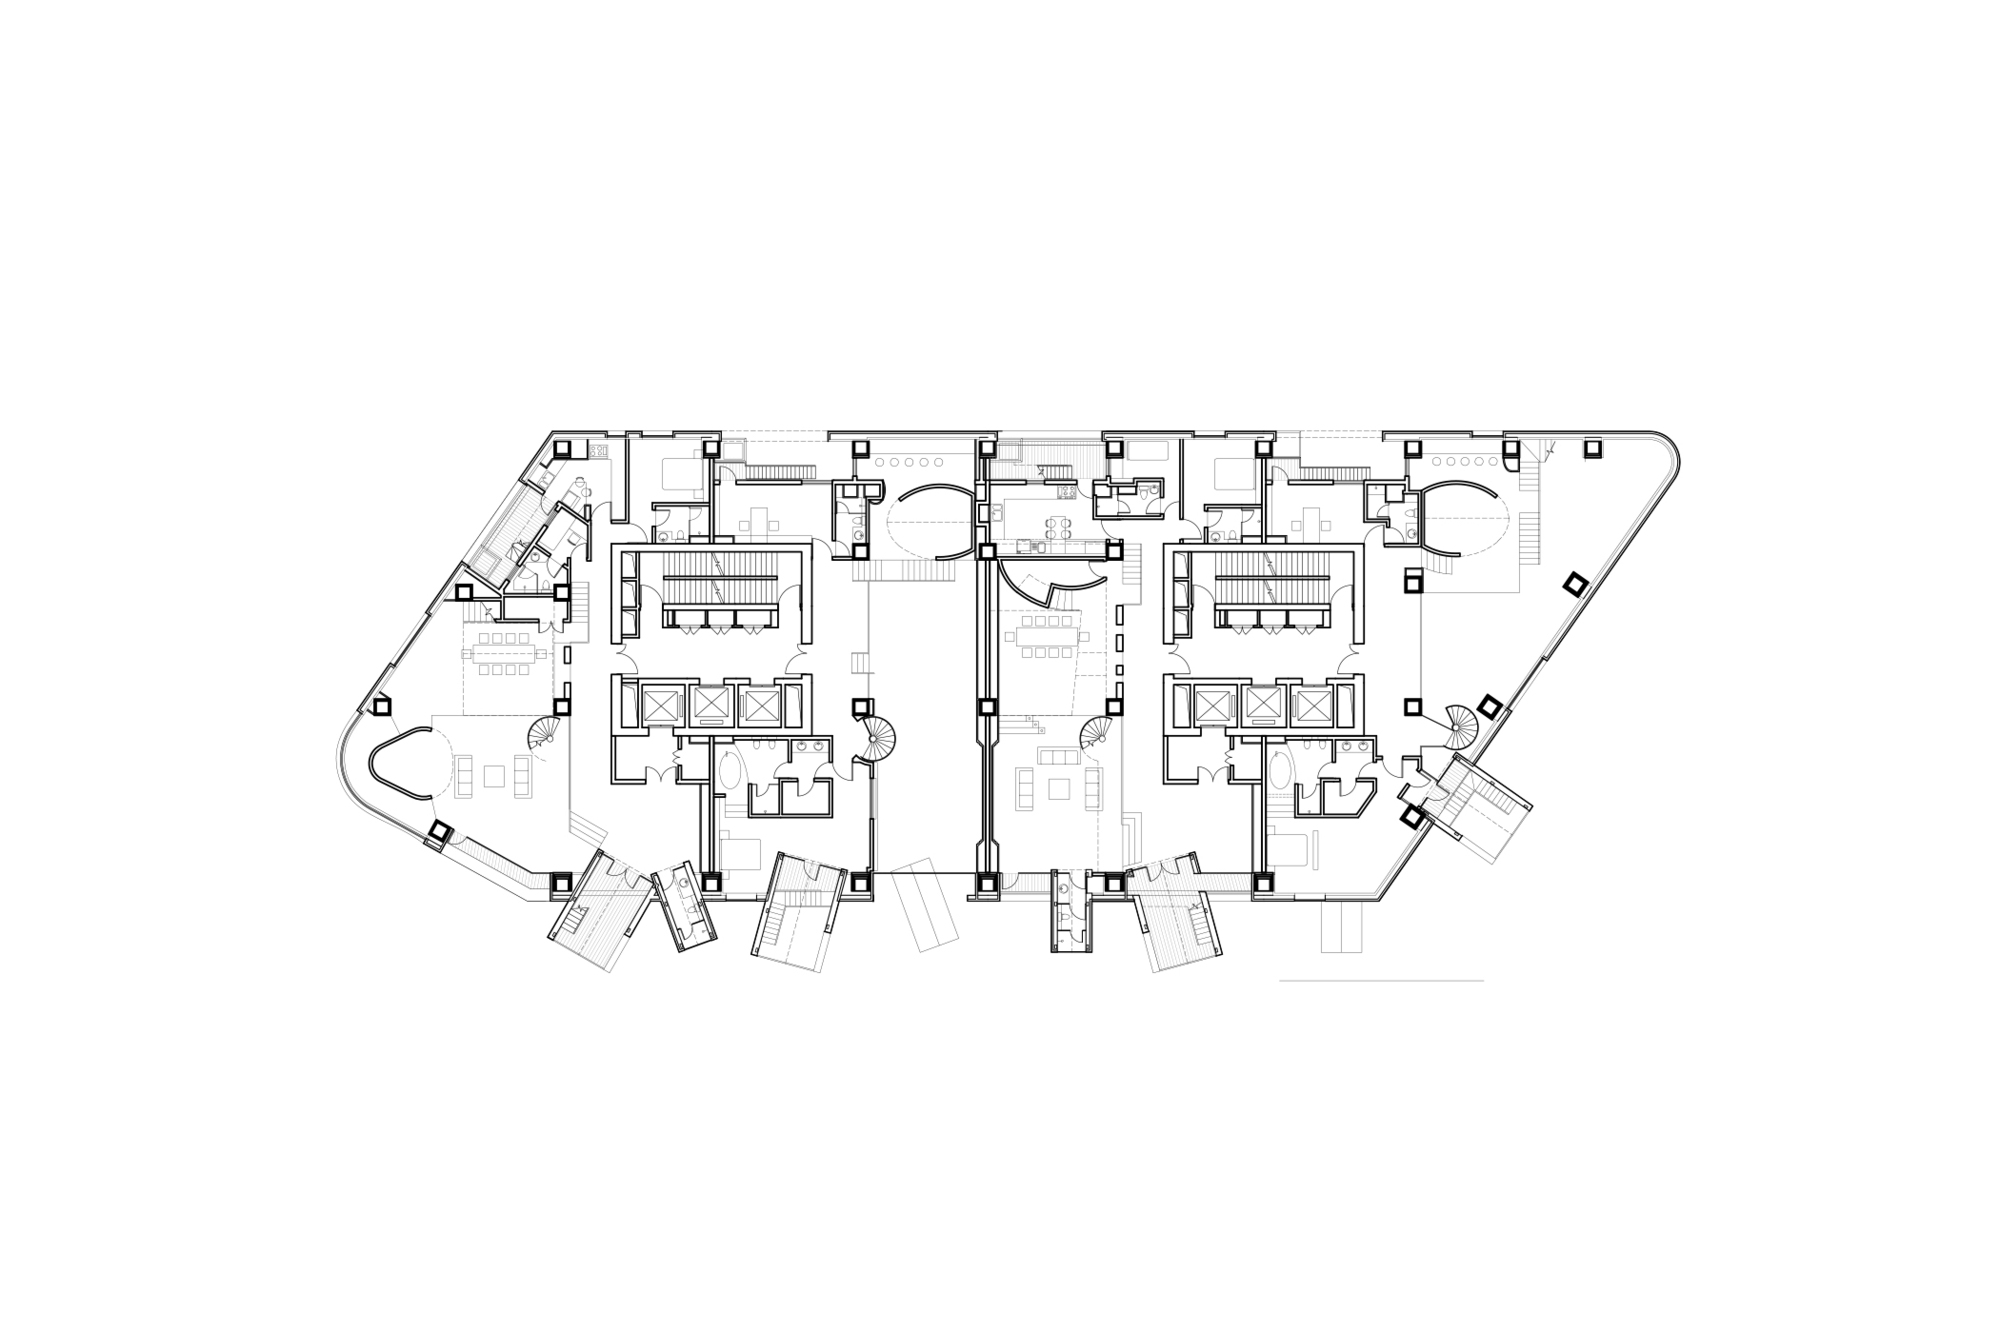 23_南楼八层平面图8th_floor_plan_of_south_tower1-550.jpg